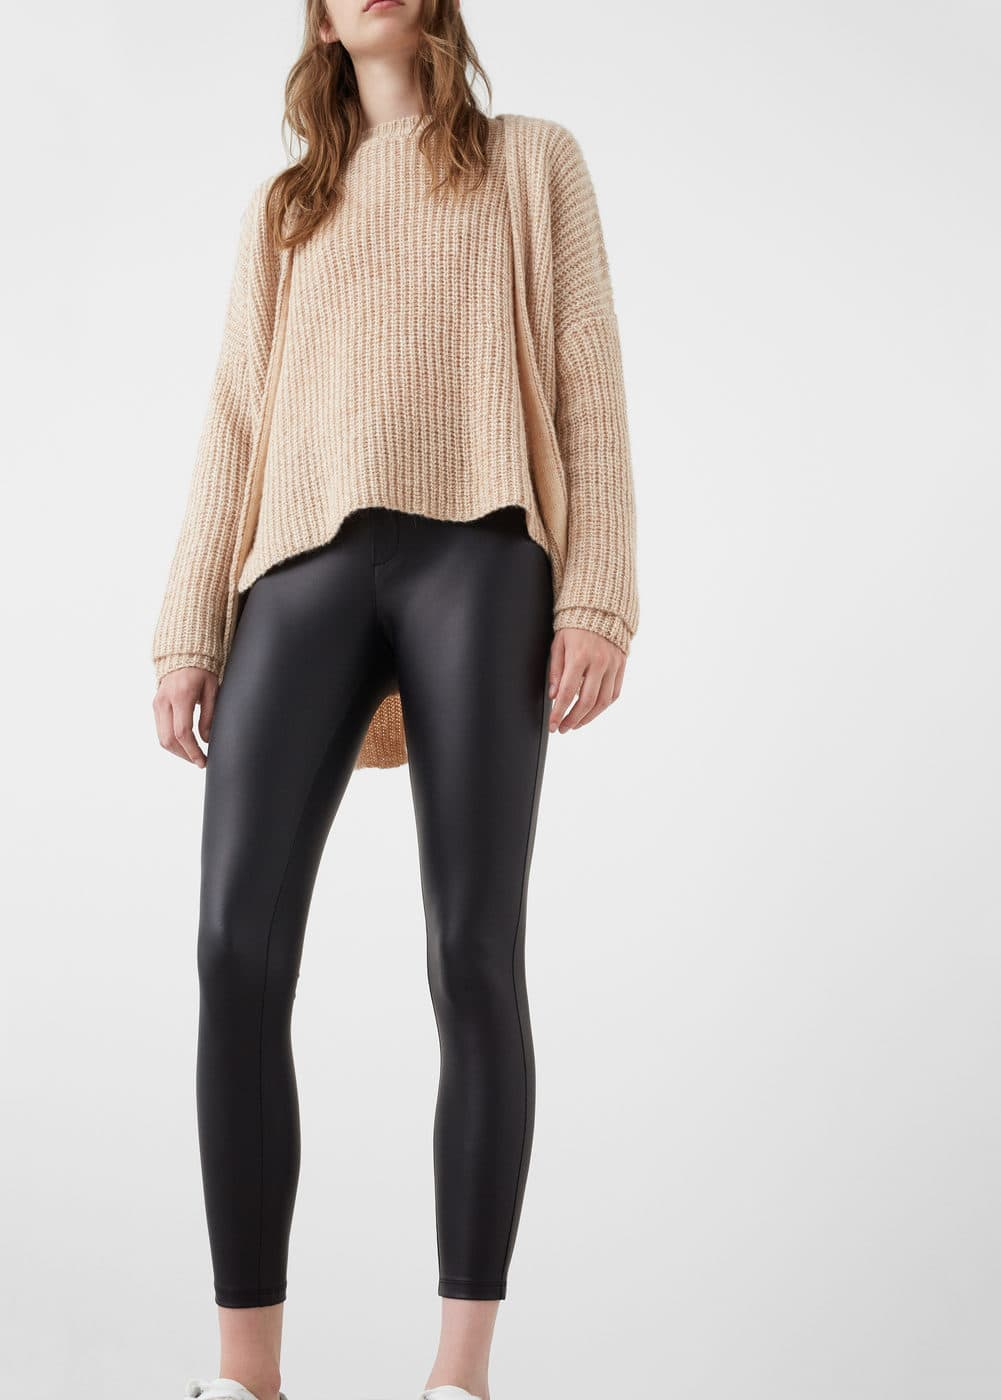 Glossed-effect leggings | MNG